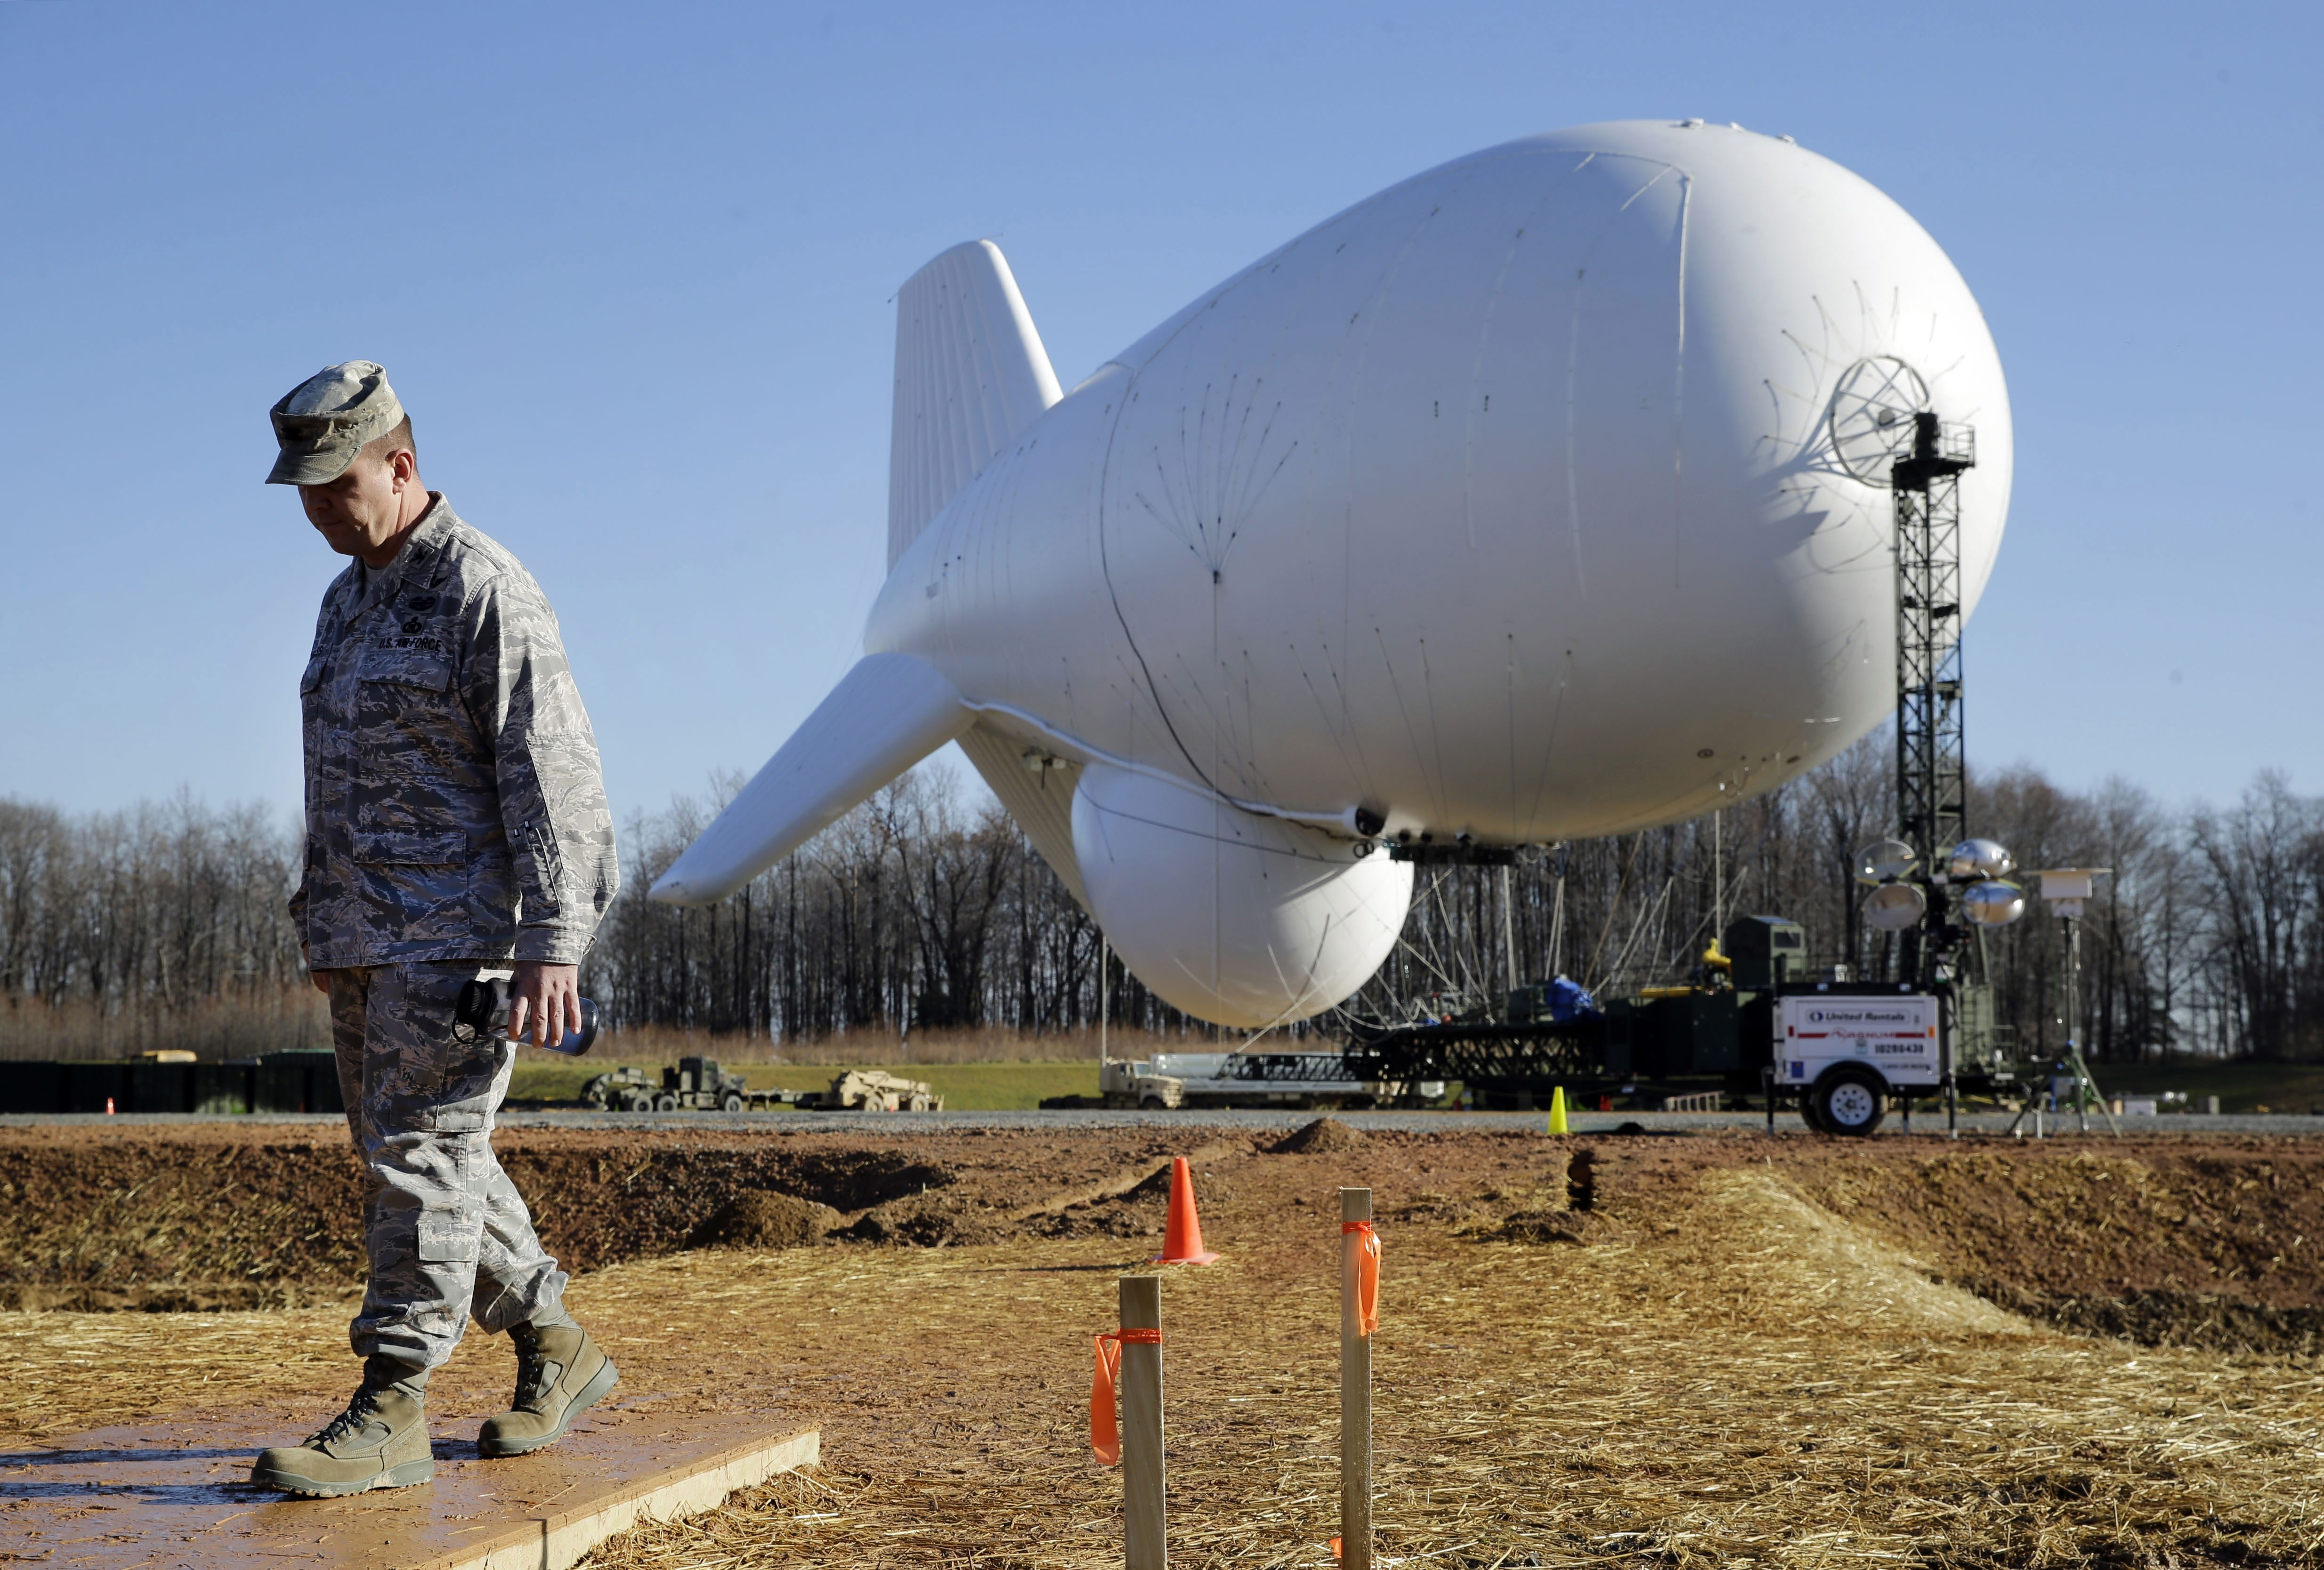 NORAD's Air Force Col. Chuck Douglass walks in front of an unmanned aerostat that is part of a new U.S. military cruise-missile defense system during a media preview last month in Middle River, Md.